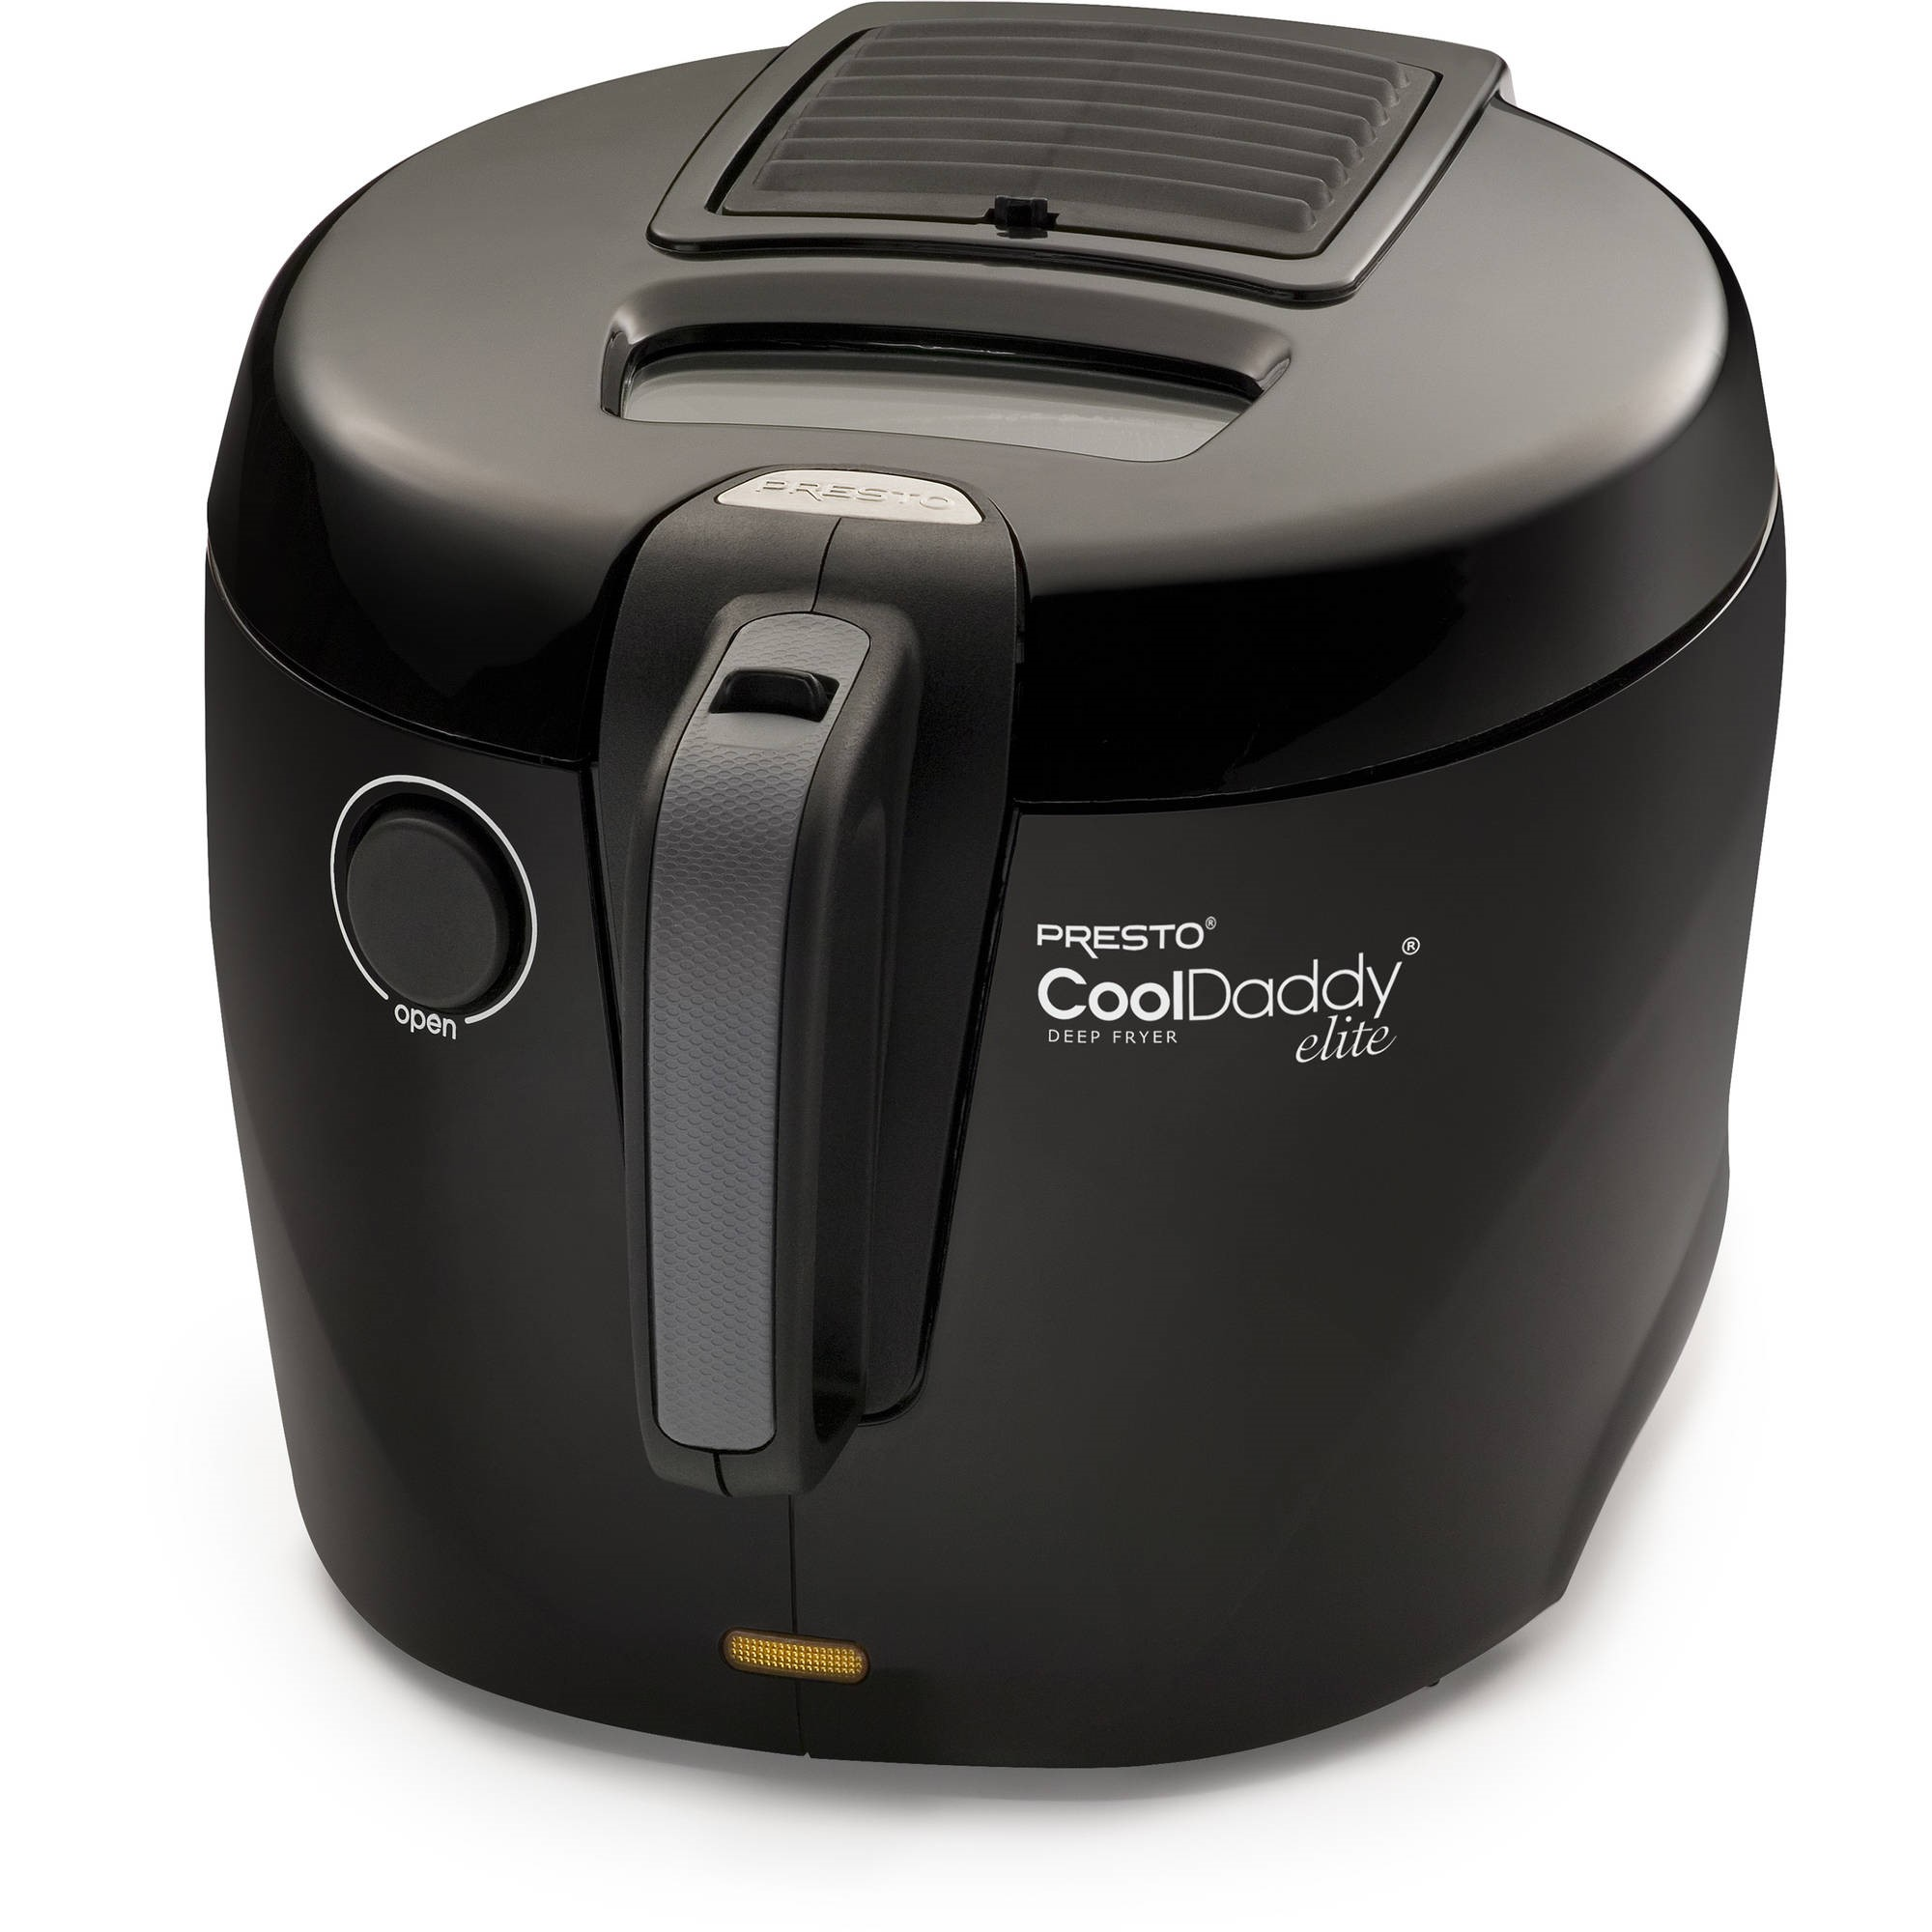 Presto CoolDaddy® Elite cool-touch electric deep fryer